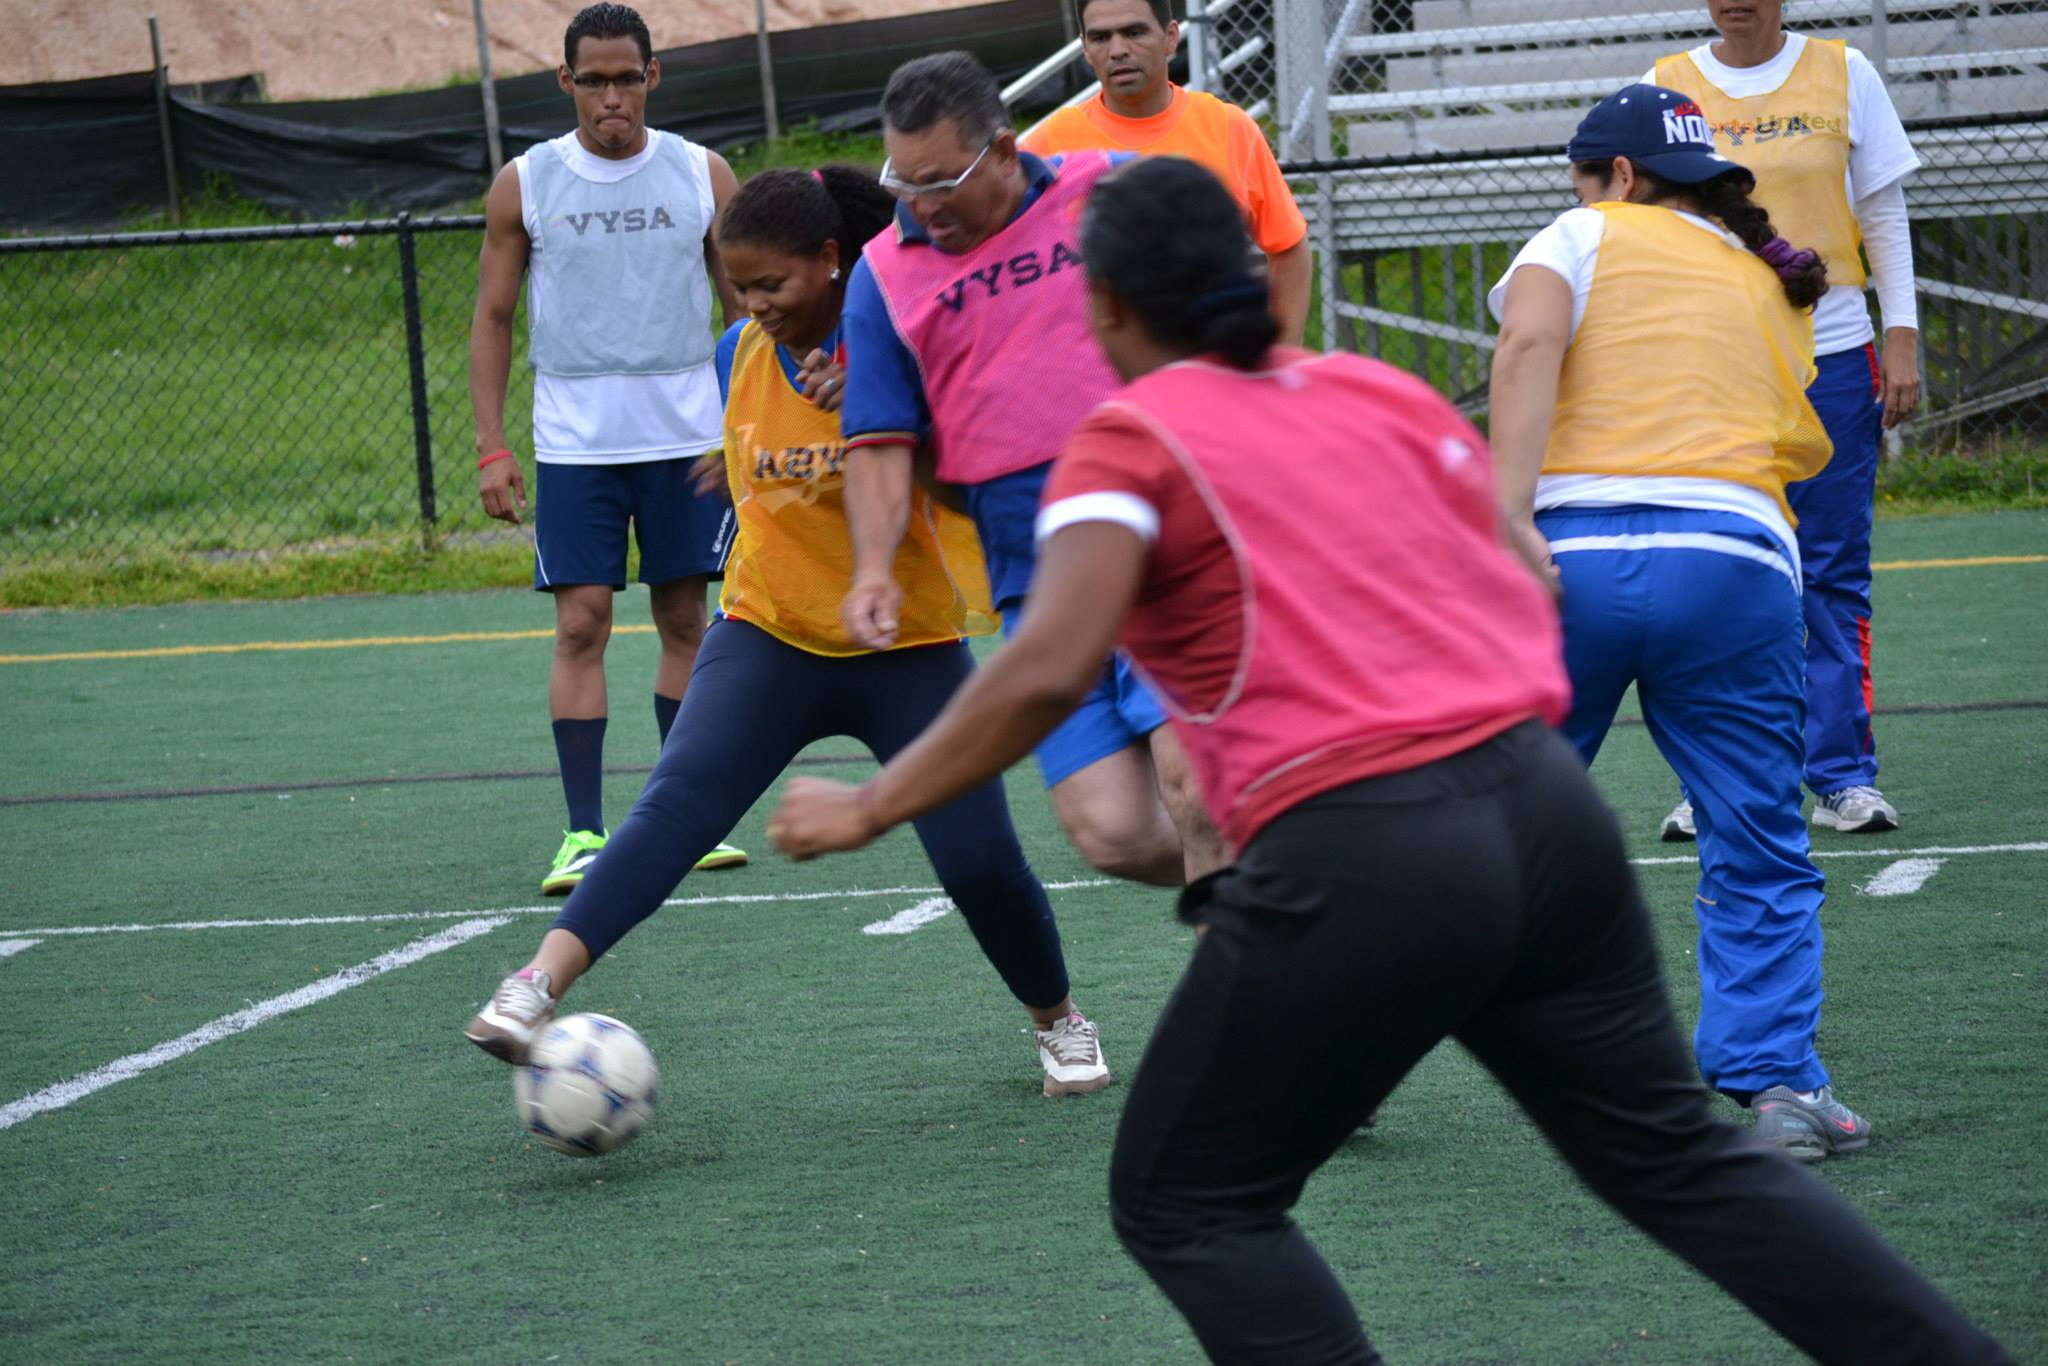 The sports visitors getting competitive during a scrimmage